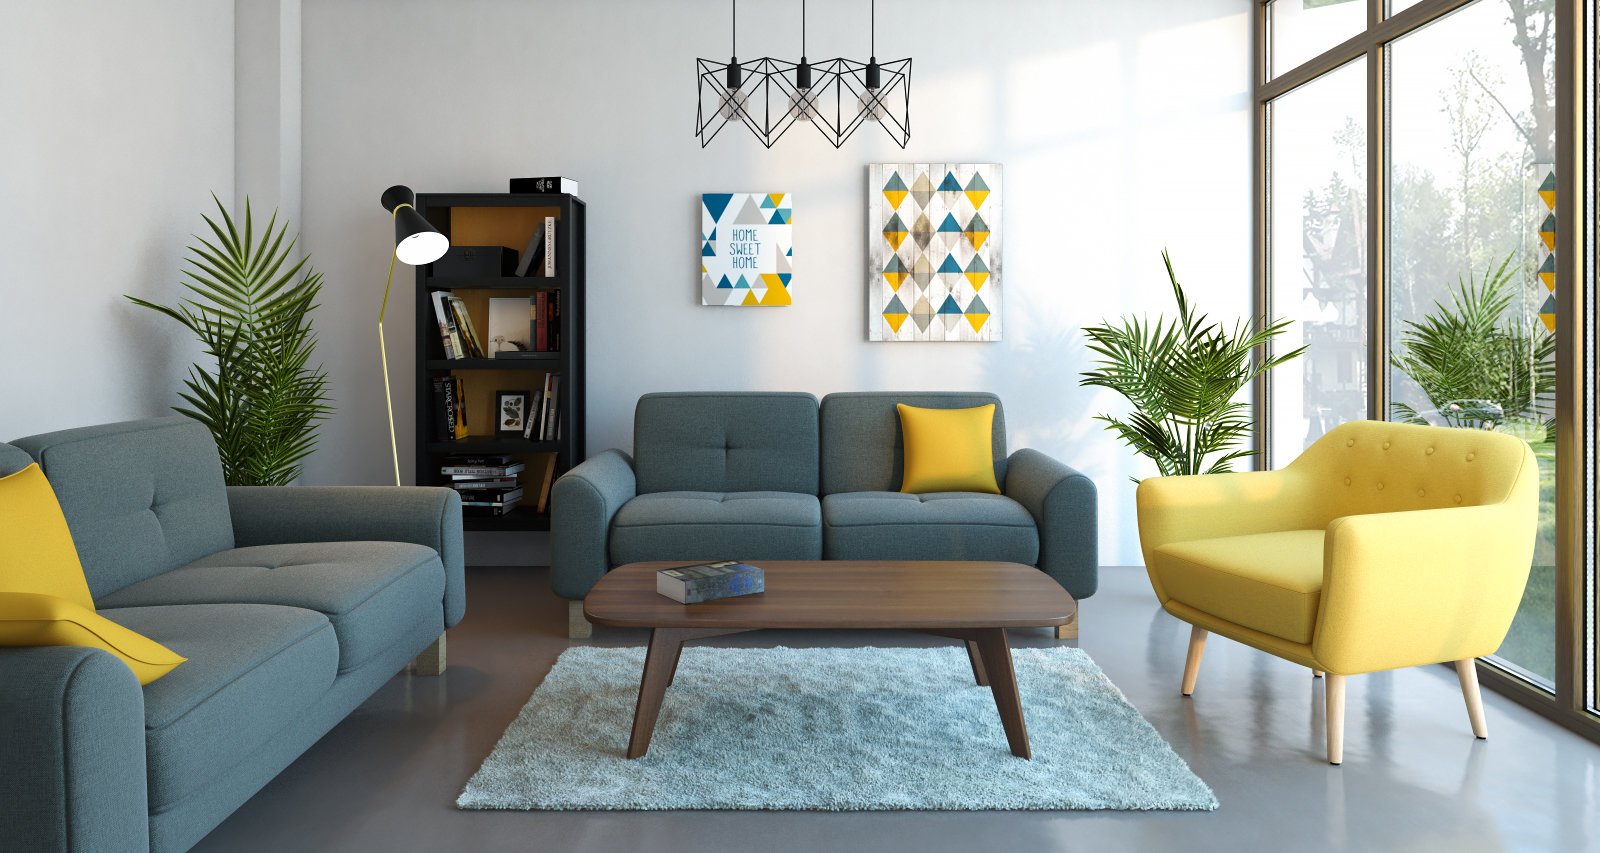 Salon Jaune Et Bleu Salon Scandinave Gris Bleu Jaune Pearlfection Fr